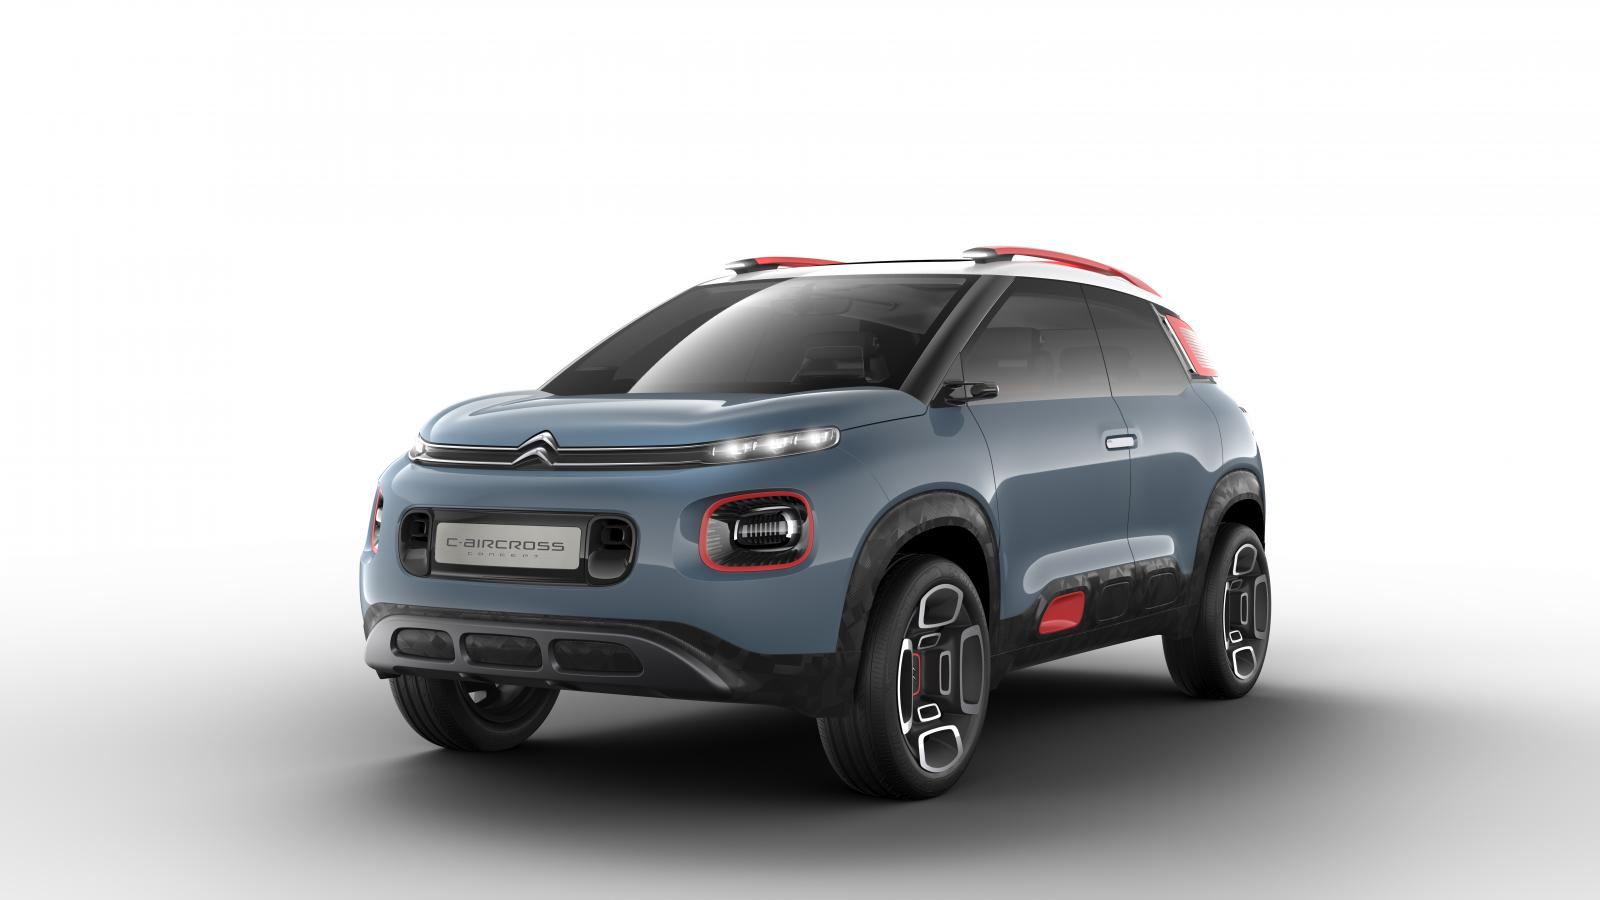 Concept C-Aircross